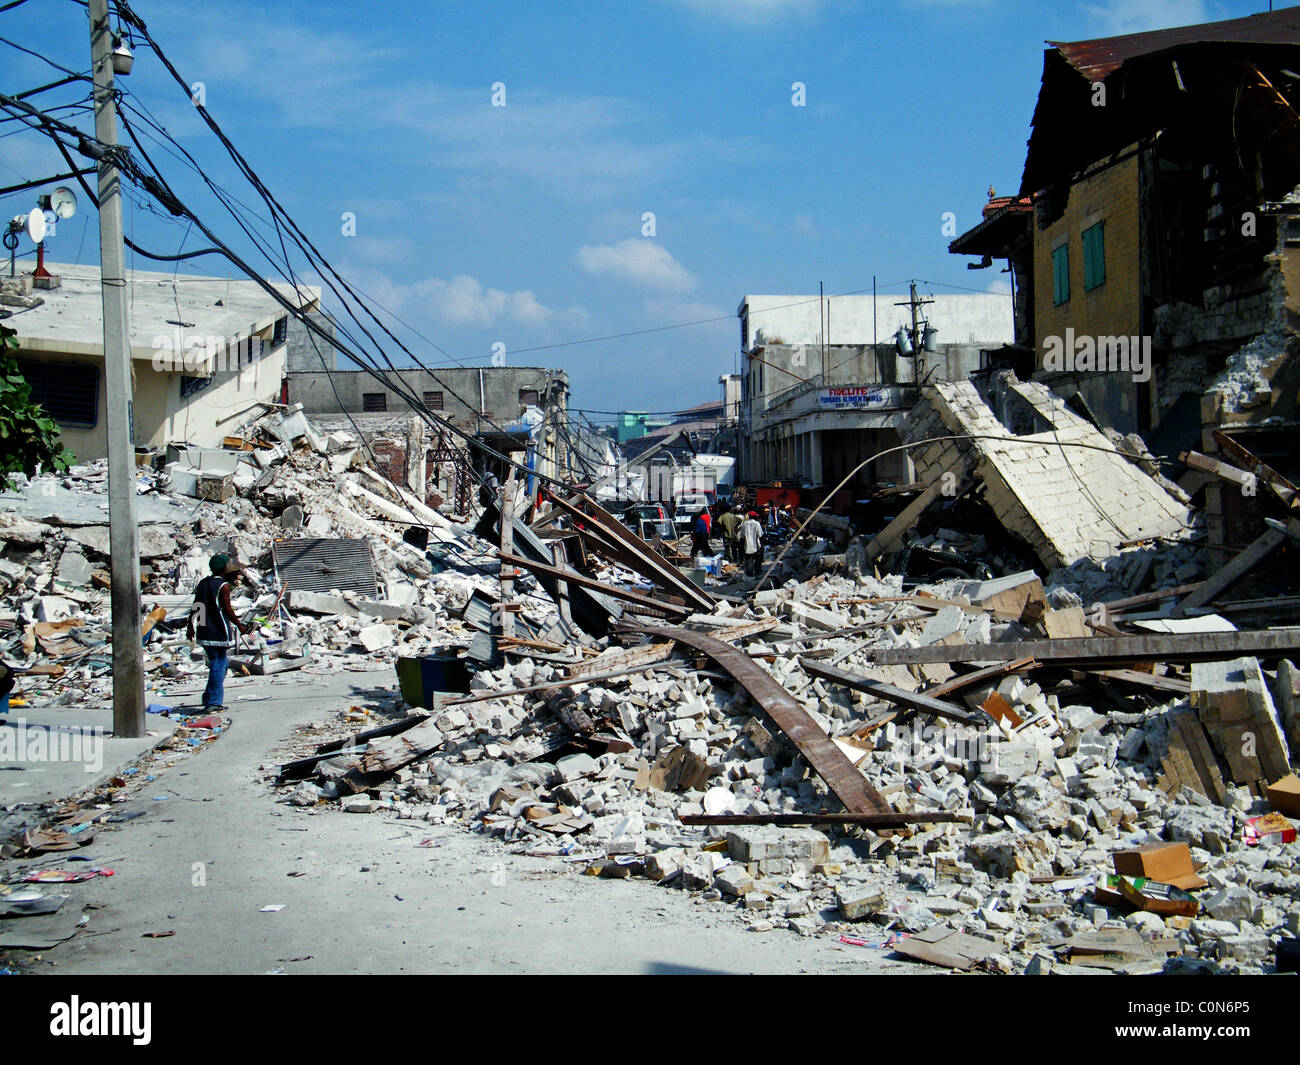 hati earthquake Tuesday afternoon, january 12th, the worst earthquake in 200 years - 70 in magnitude - struck less than ten miles from the caribbean city of port-au-prince, haiti.